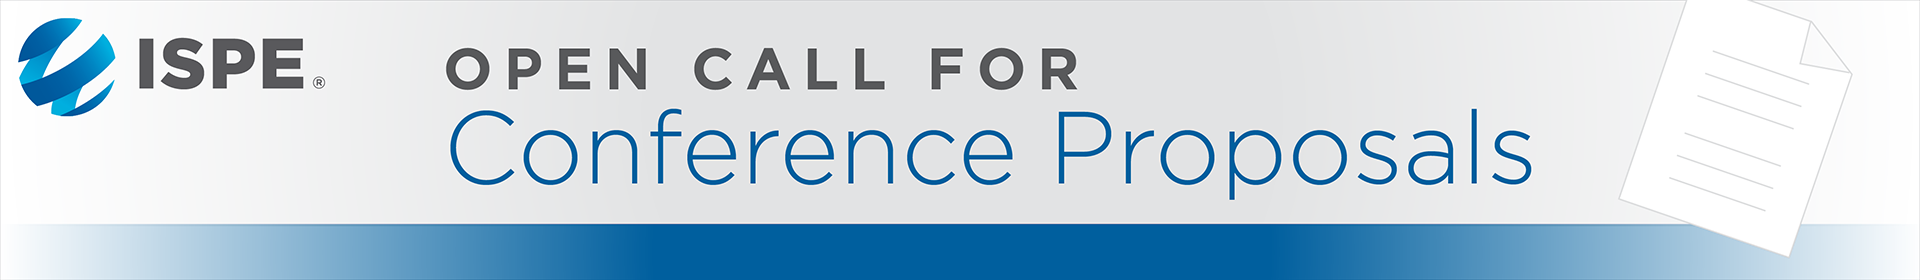 2020 ISPE Call for Conference Proposals Event Banner